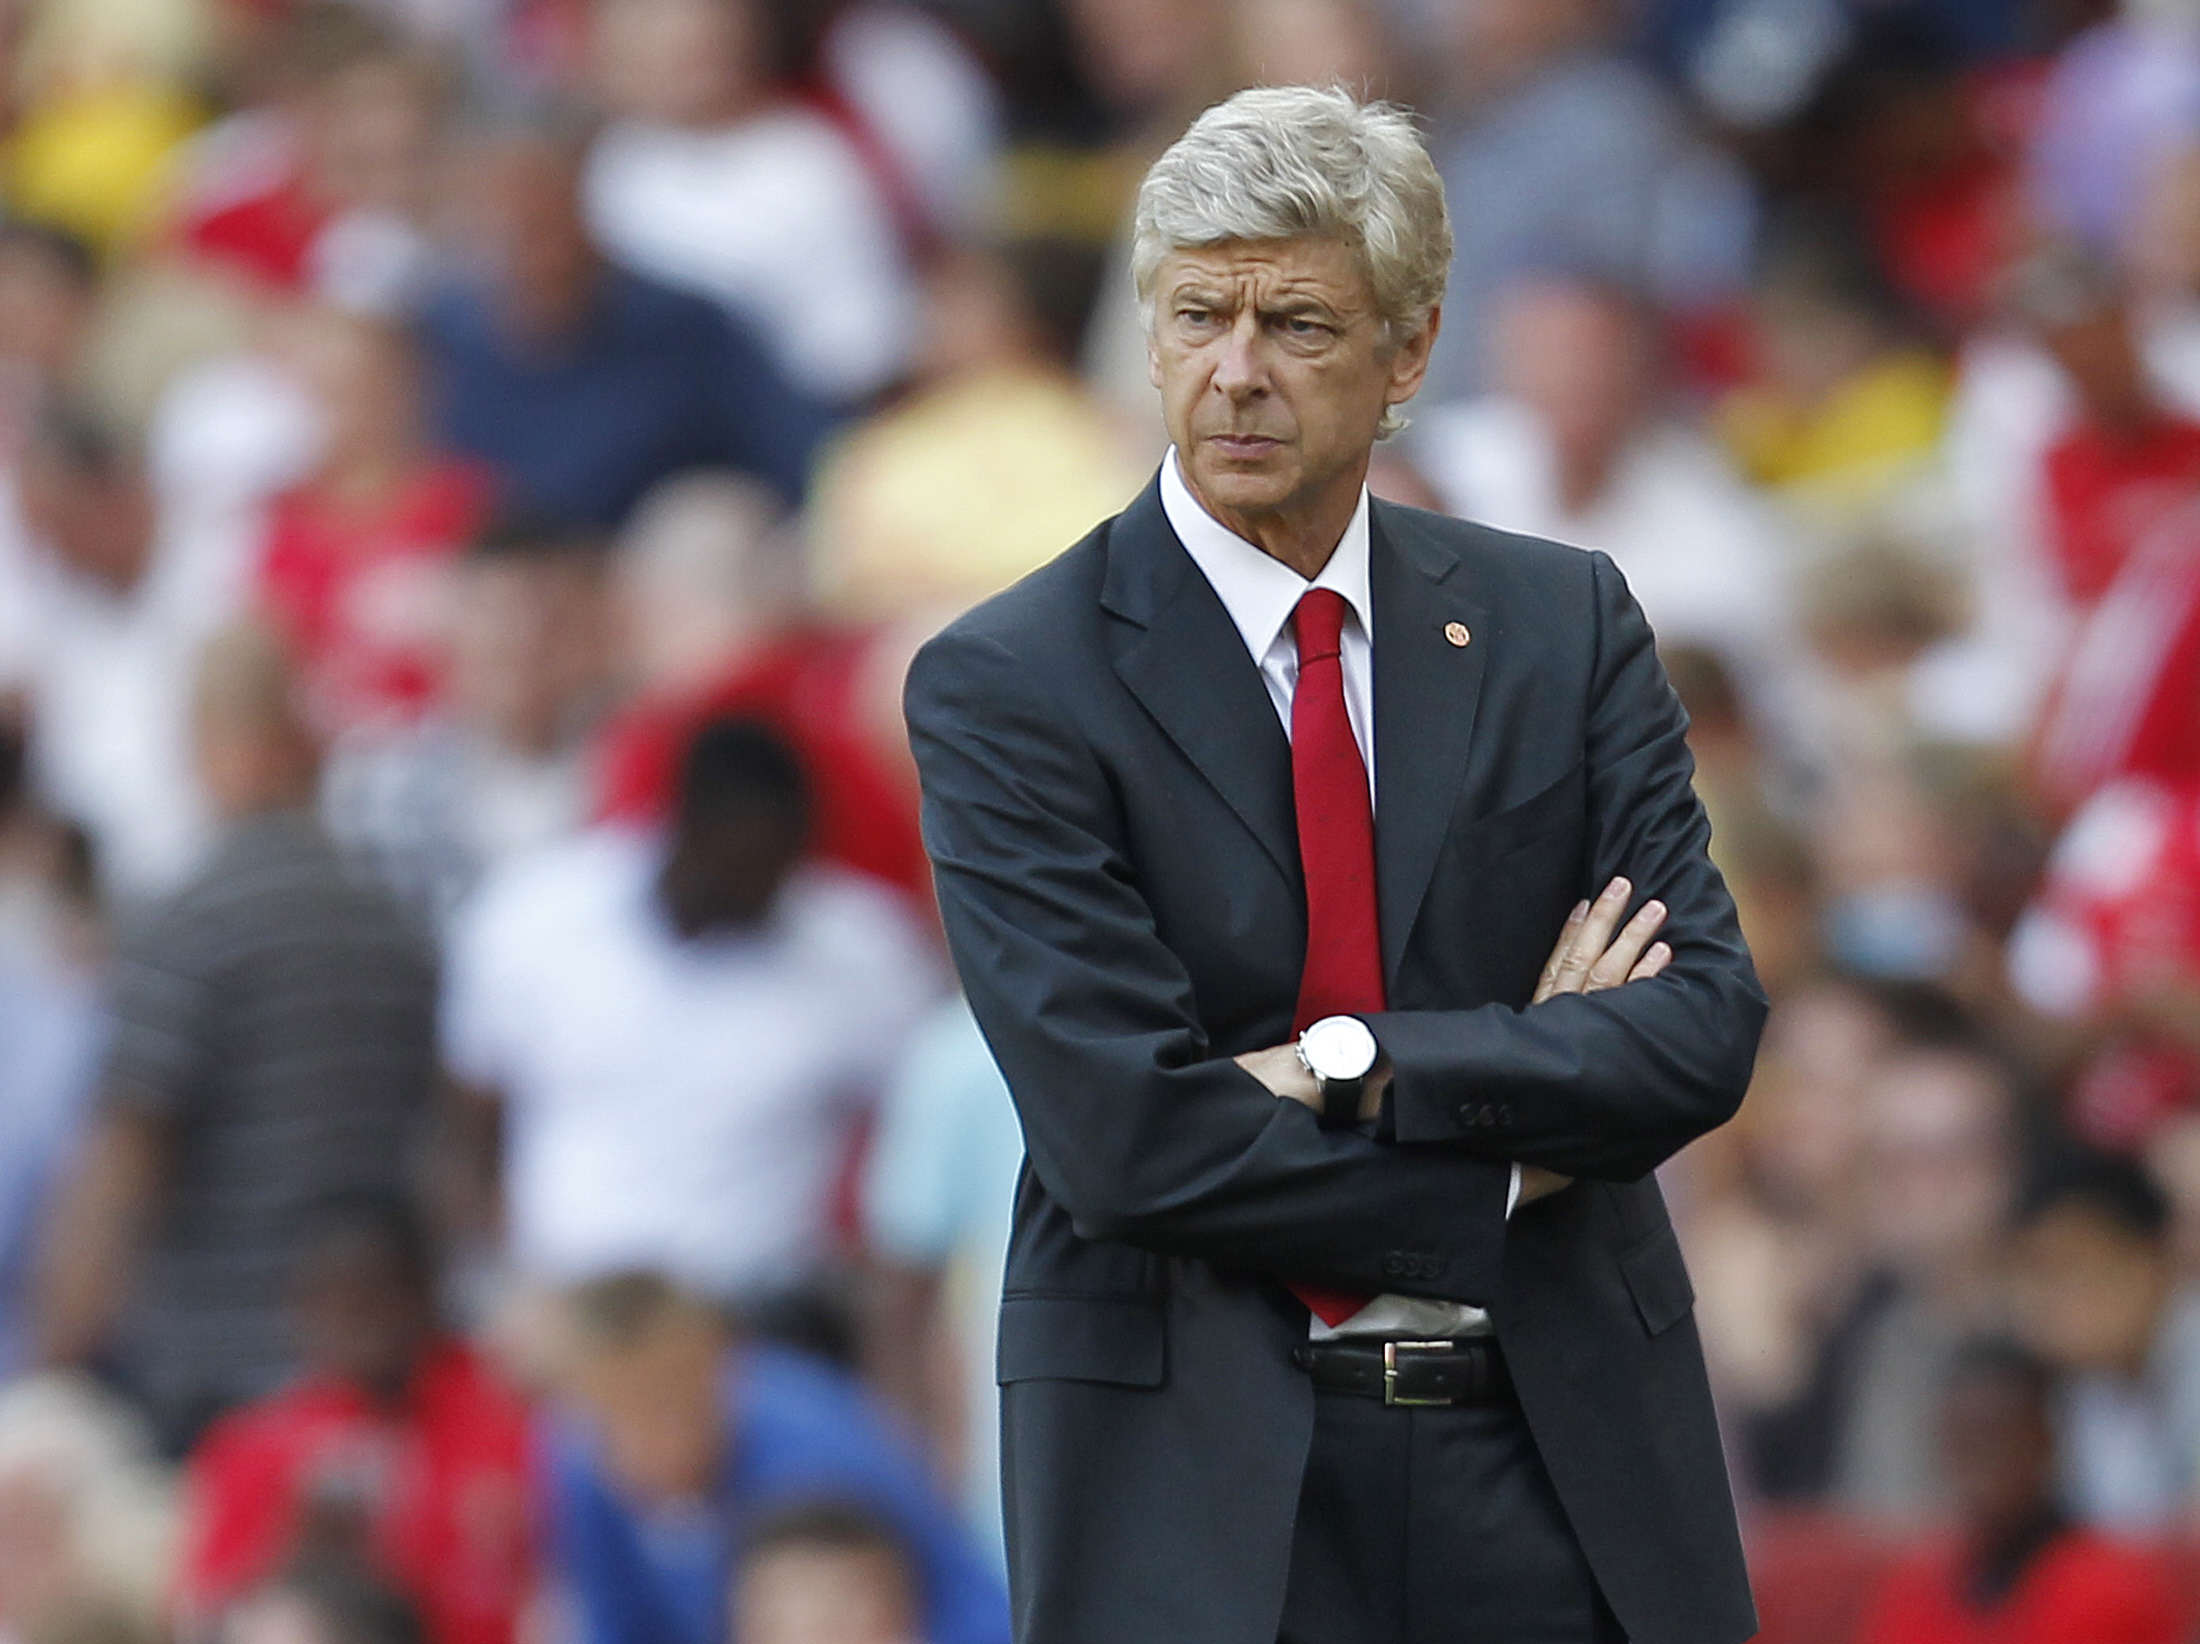 Arsenal's Manager Arsene Wenger gestures